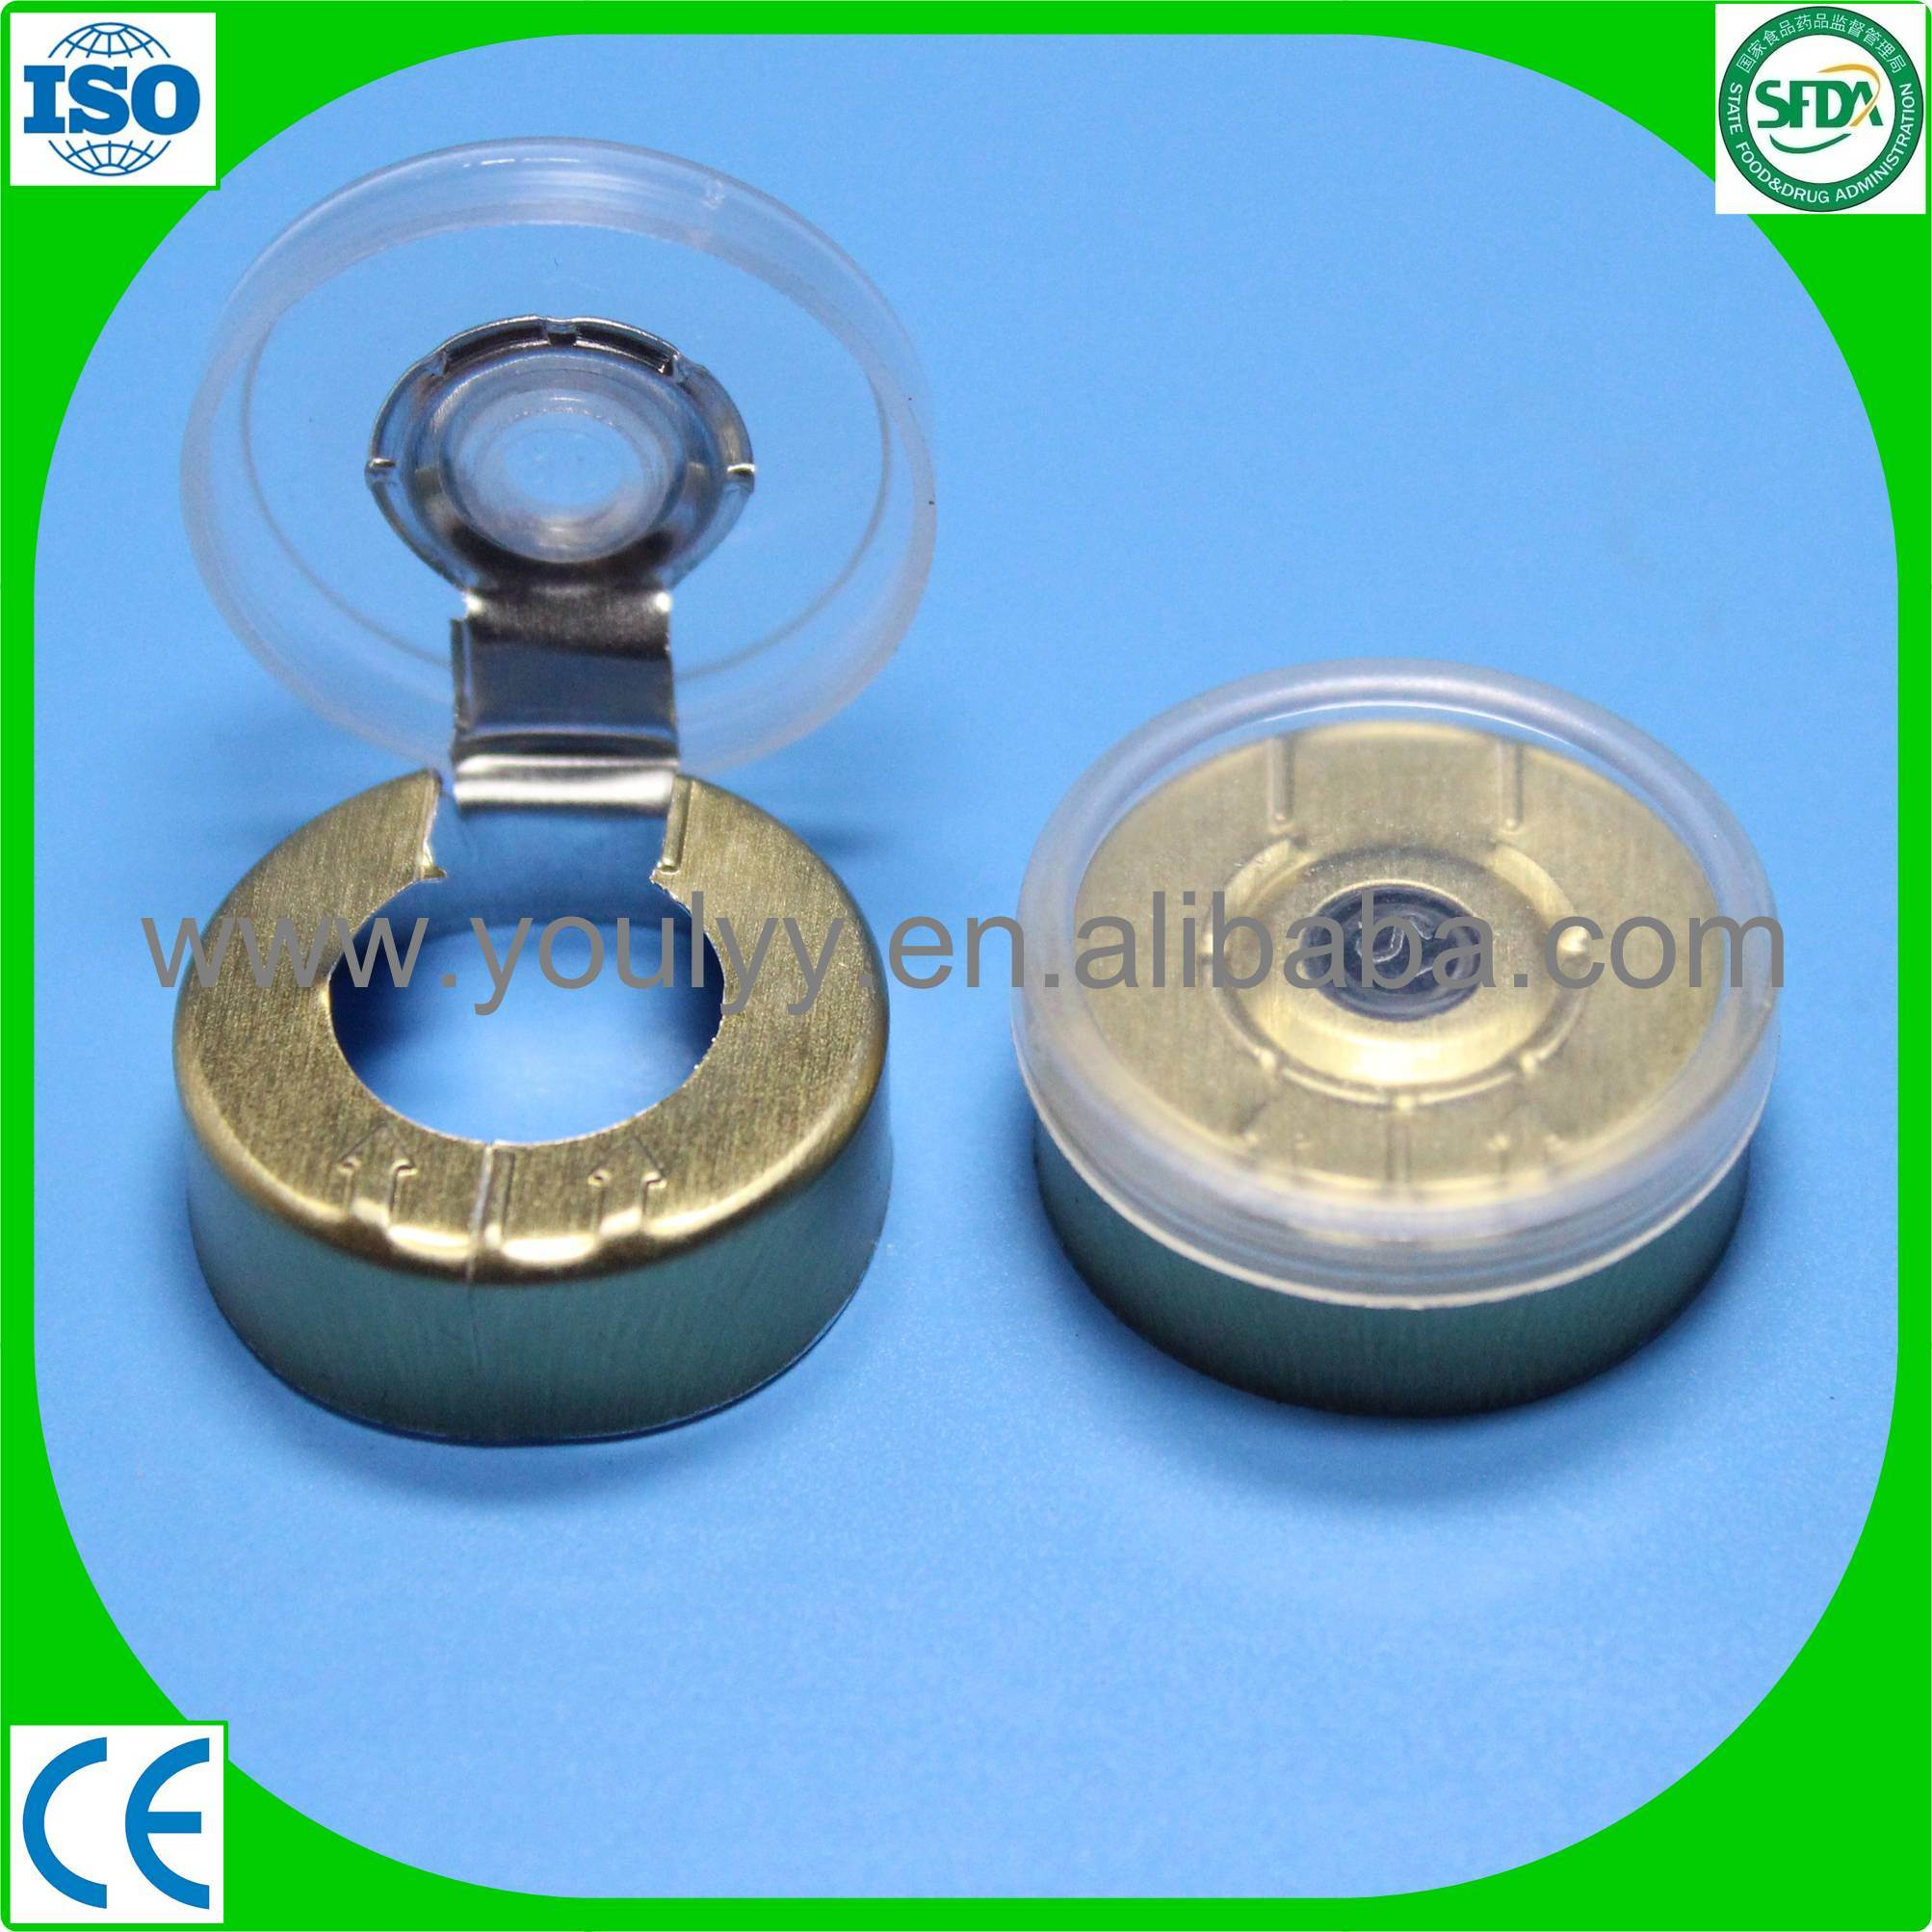 20mm Bottle Cap